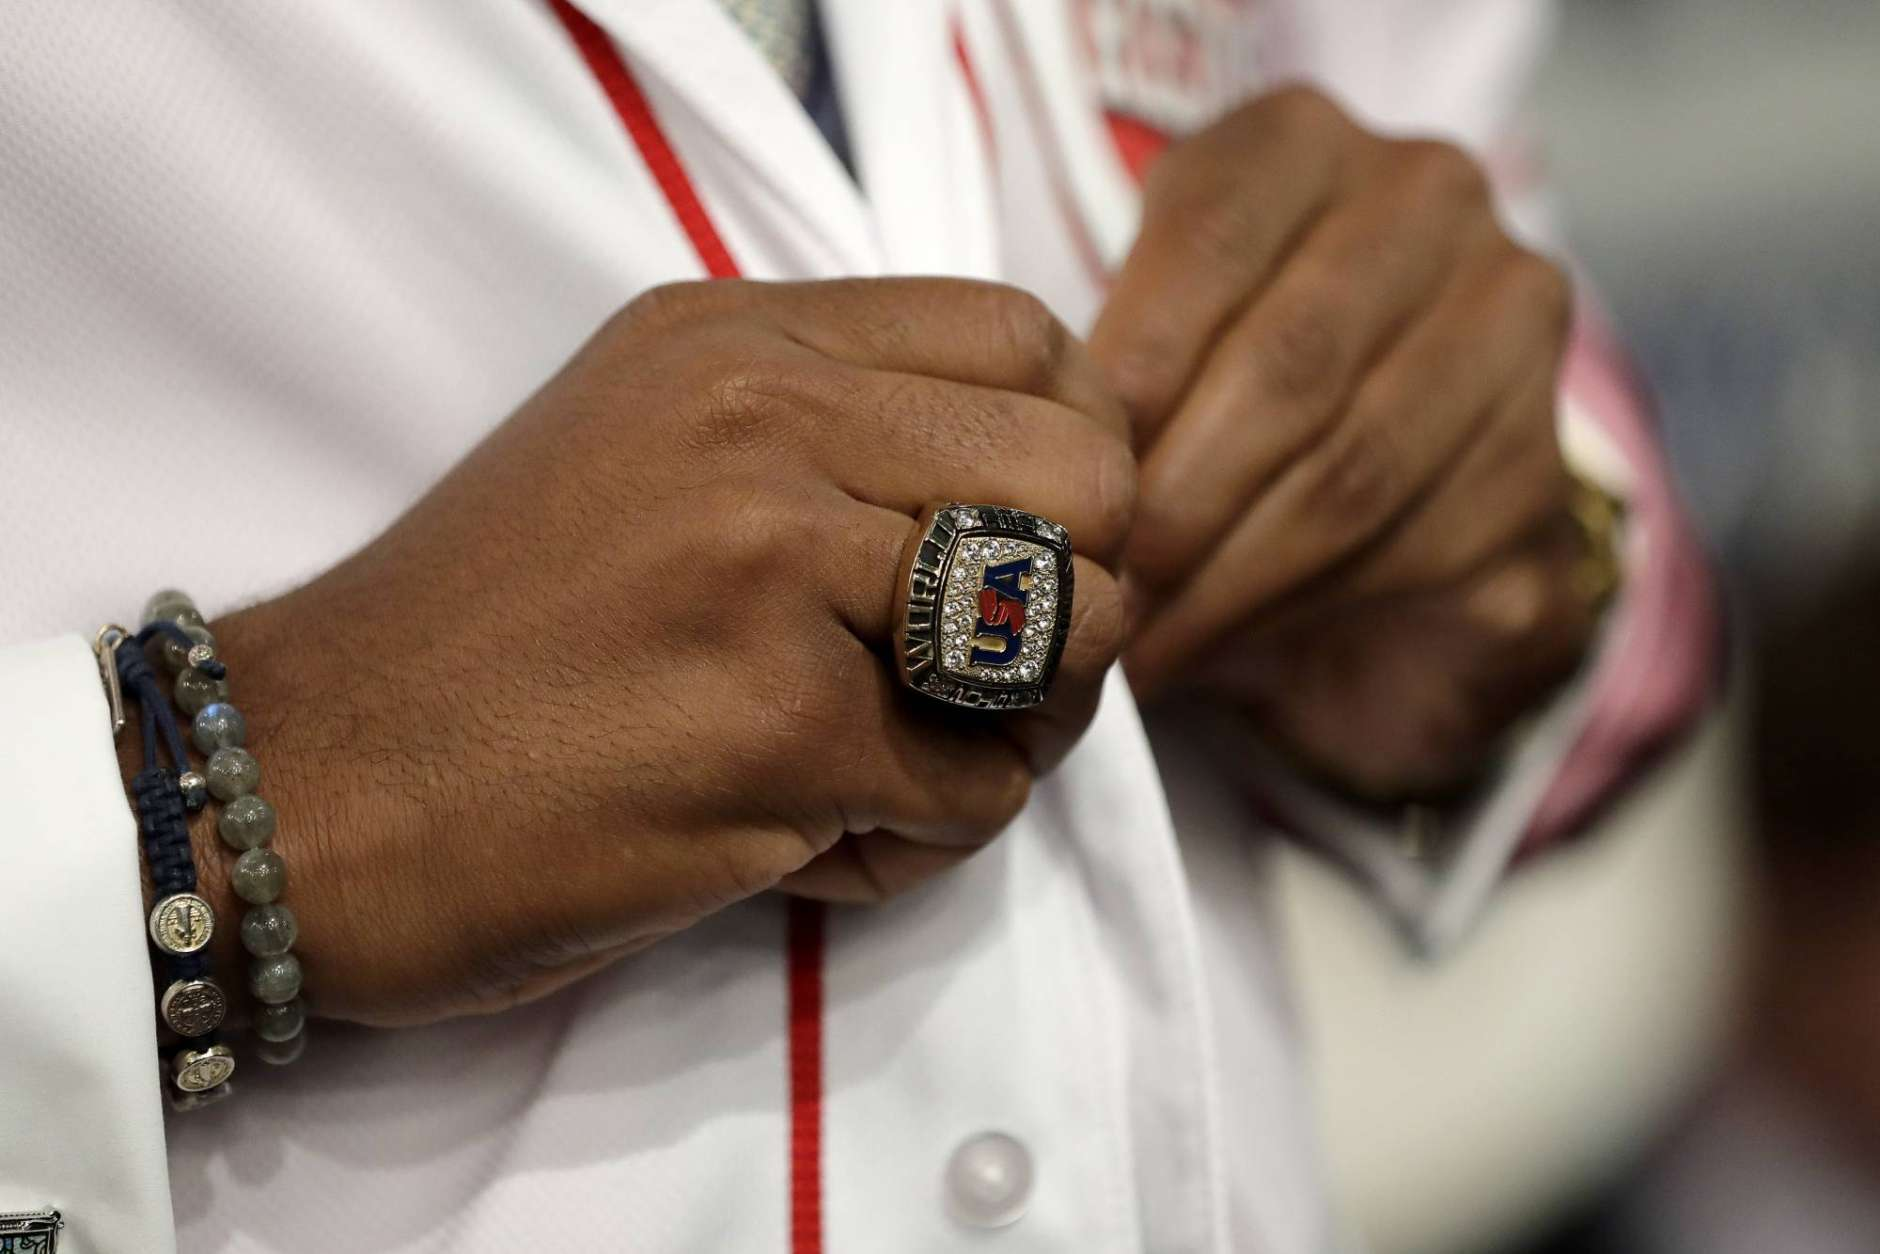 Hunter Greene, a pitcher and shortstop from Notre Dame High School in Sherman Oaks, Calif., buttons on a Cincinnati Reds jersey after being selected No. 2 by the Reds in the first round of the Major League Baseball draft, Monday, June 12, 2017, in Secaucus, N.J. (AP Photo/Julio Cortez)